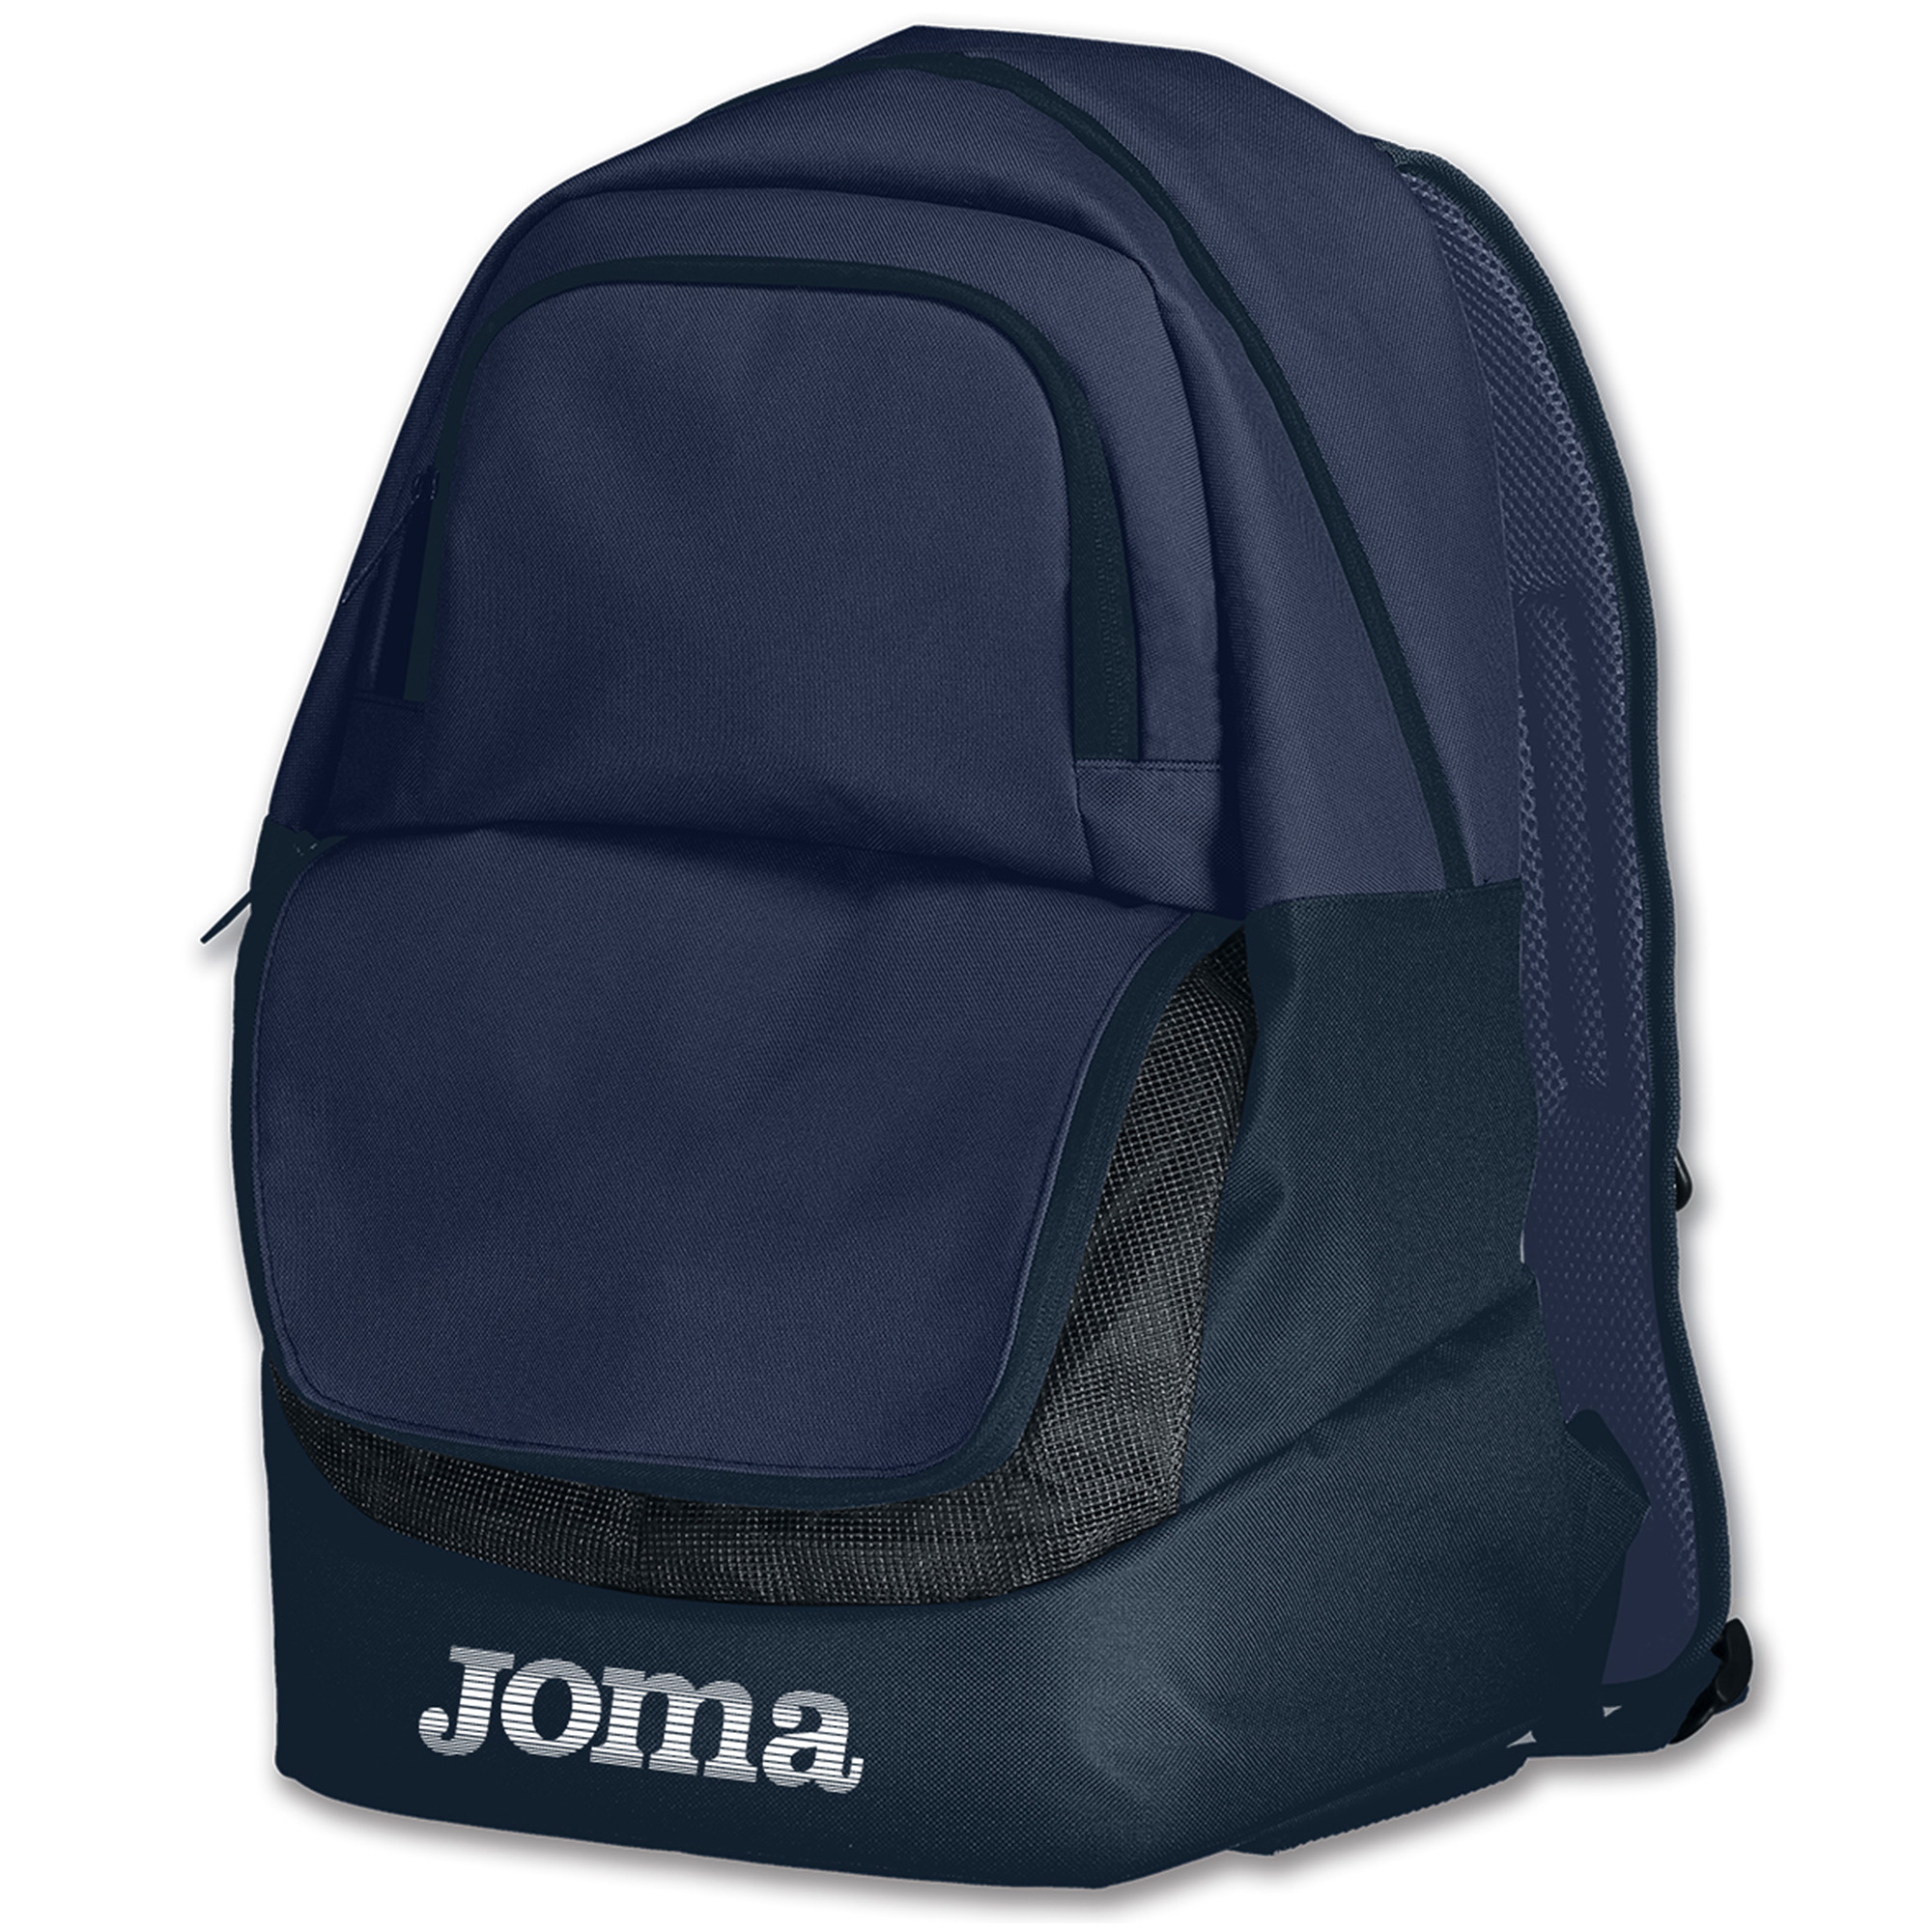 Batoh JOMA BACKPACK DIAMOND II, sada 10 ks